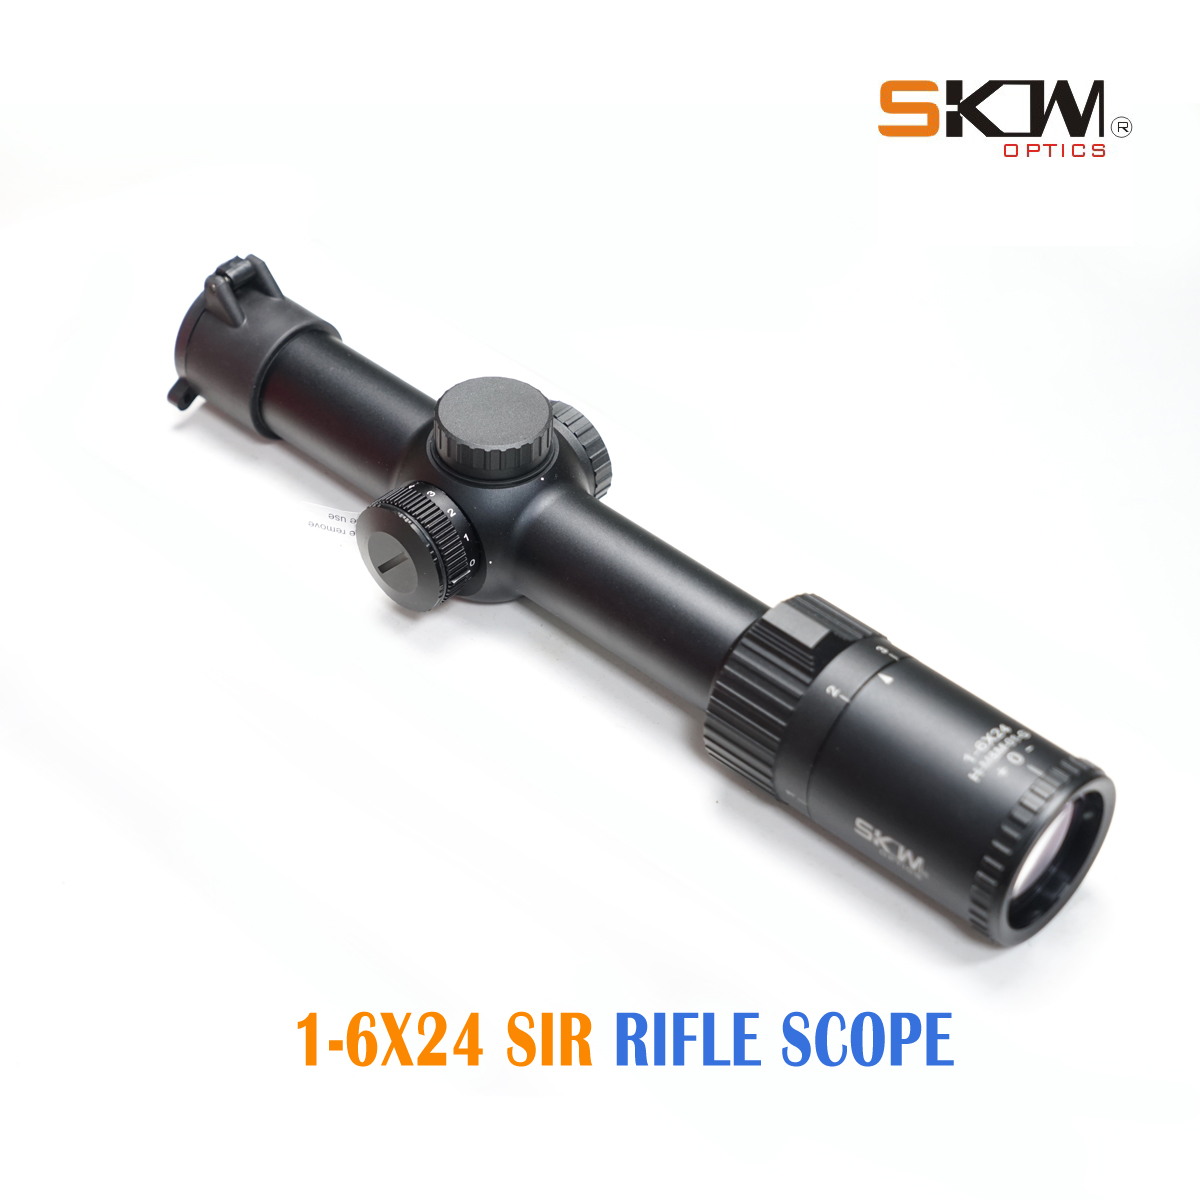 SKWoptics Hunting 1-6x24 Rifle Scopes Mount Tactical MIL Reticle Shock Proof Riflescopes 30mm Scope Rings